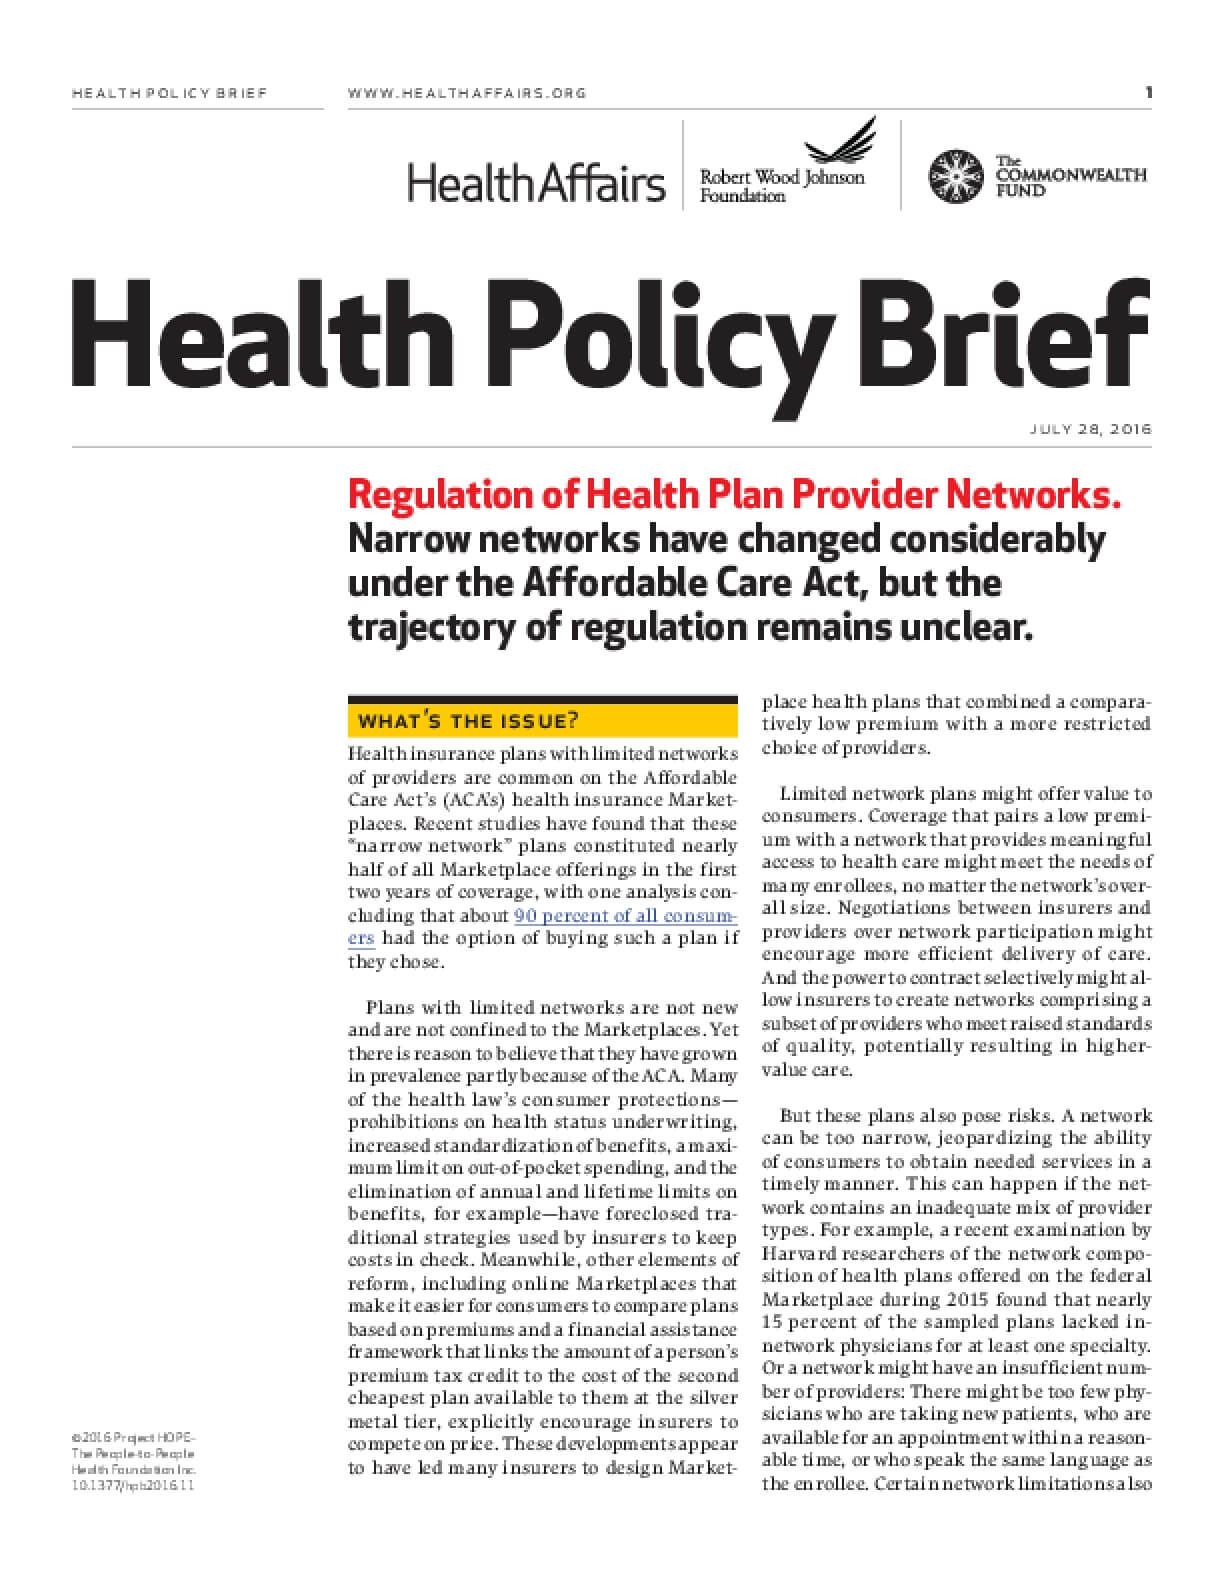 Regulation of Health Plan Provider Networks: Narrow Networks Have Changed Considerably under the Affordable Care Act, but the Trajectory of Regulation Remains Unclear